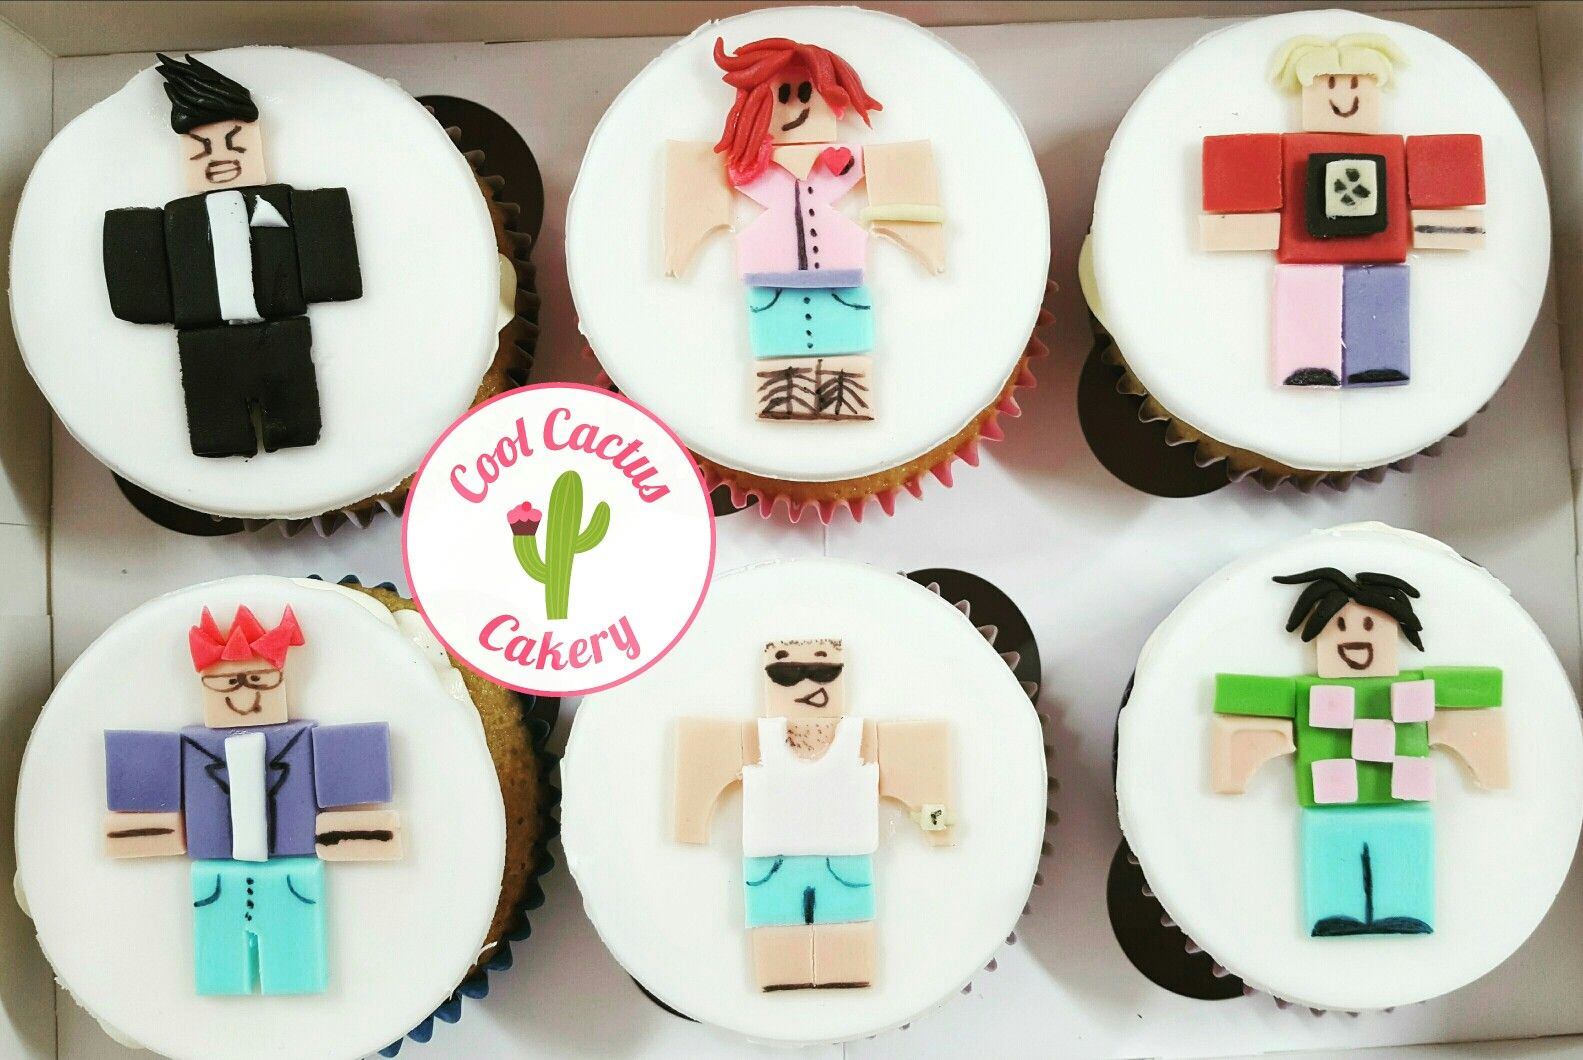 Roblox Cupcake Toppers Coolcactuscakery Cupcake Toppers Boy